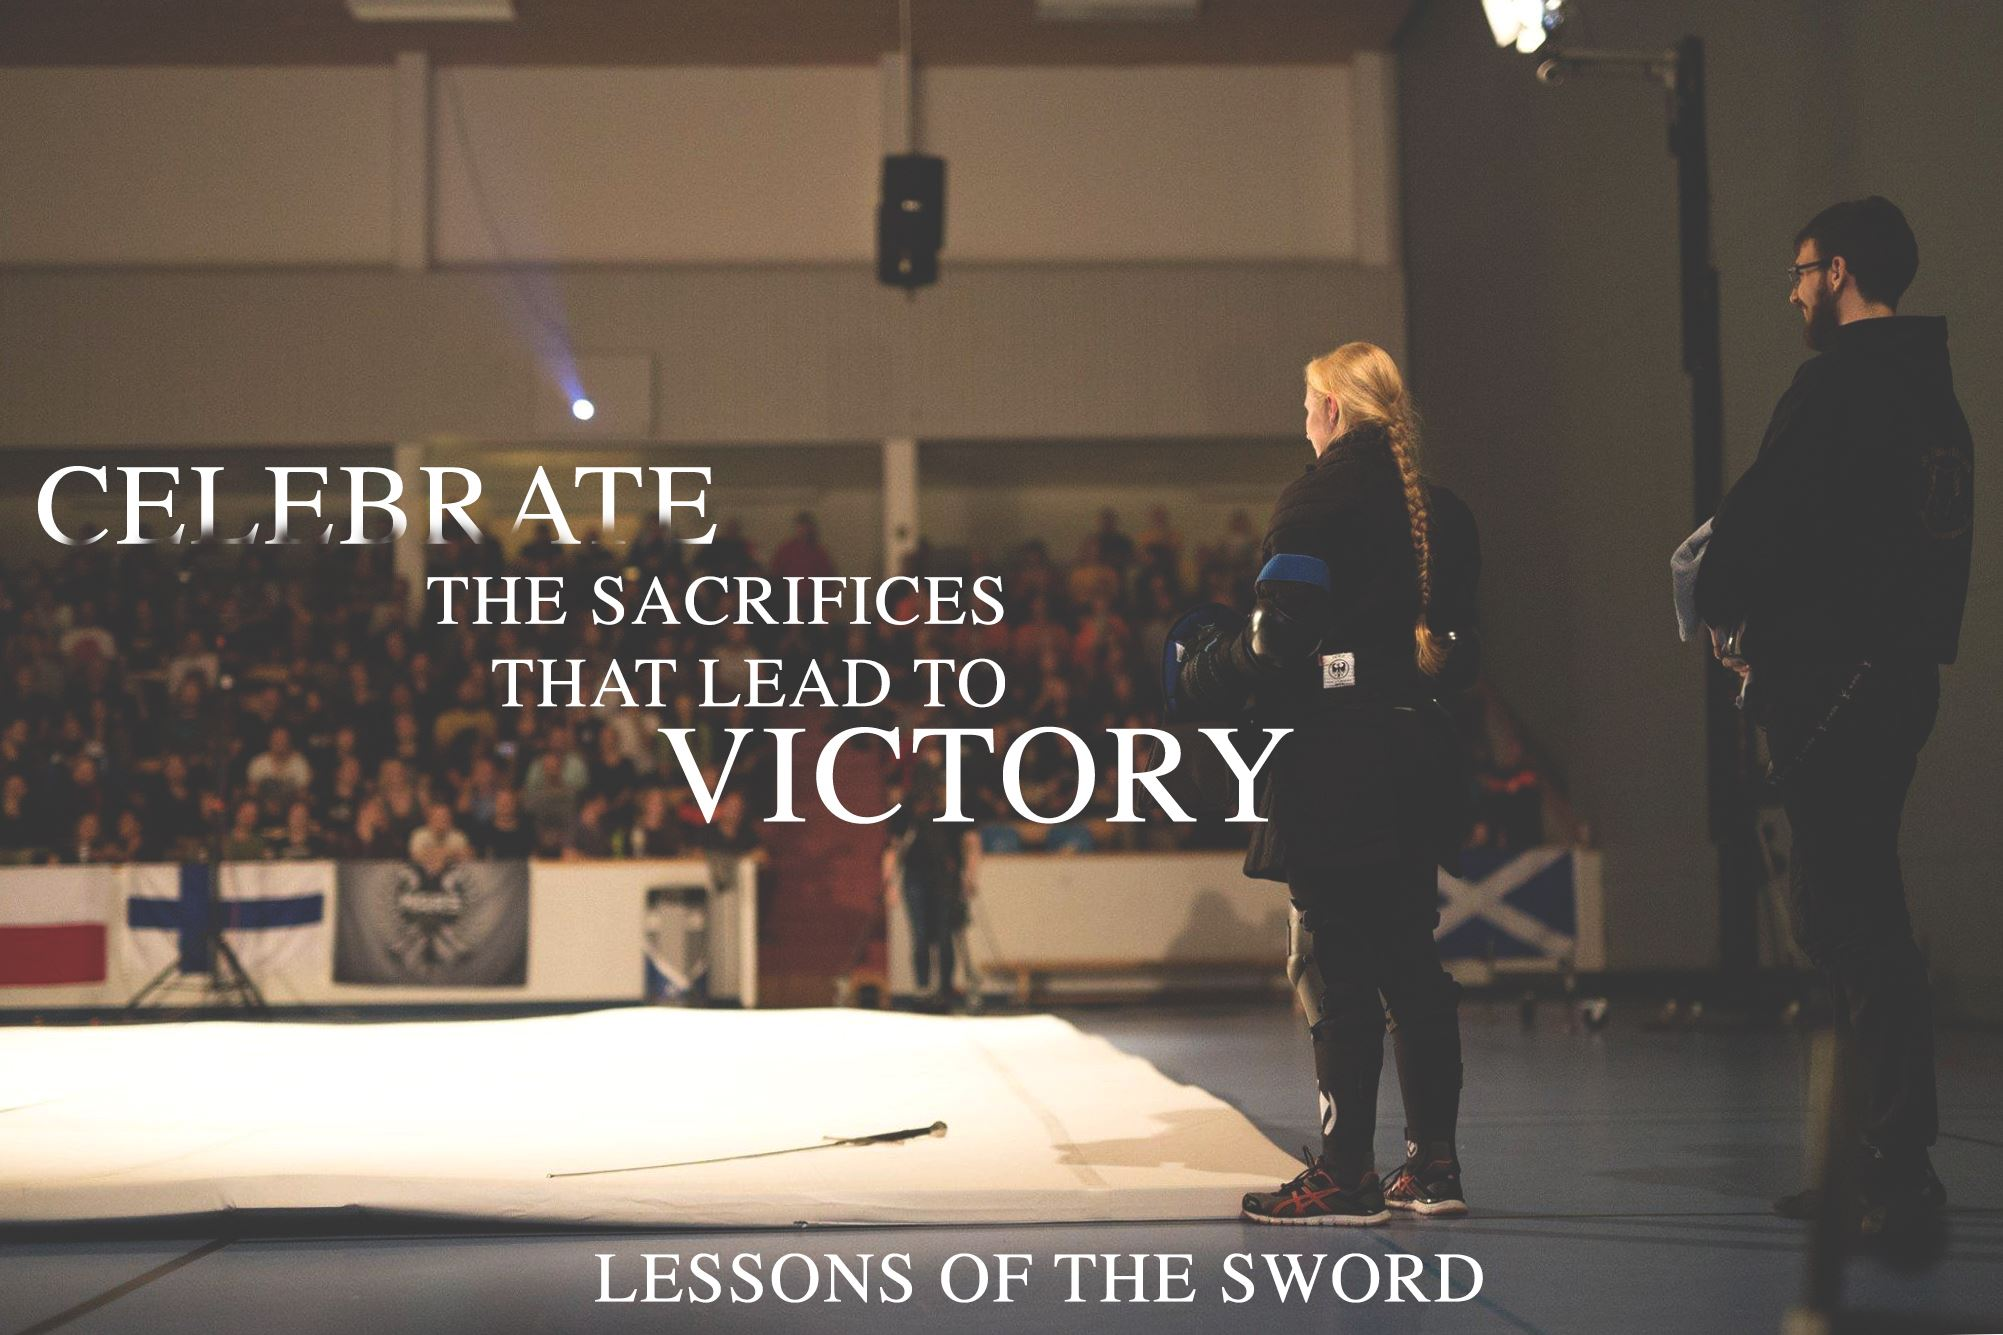 Lessons of the sword: Celebrate the sacrifices that lead to victory